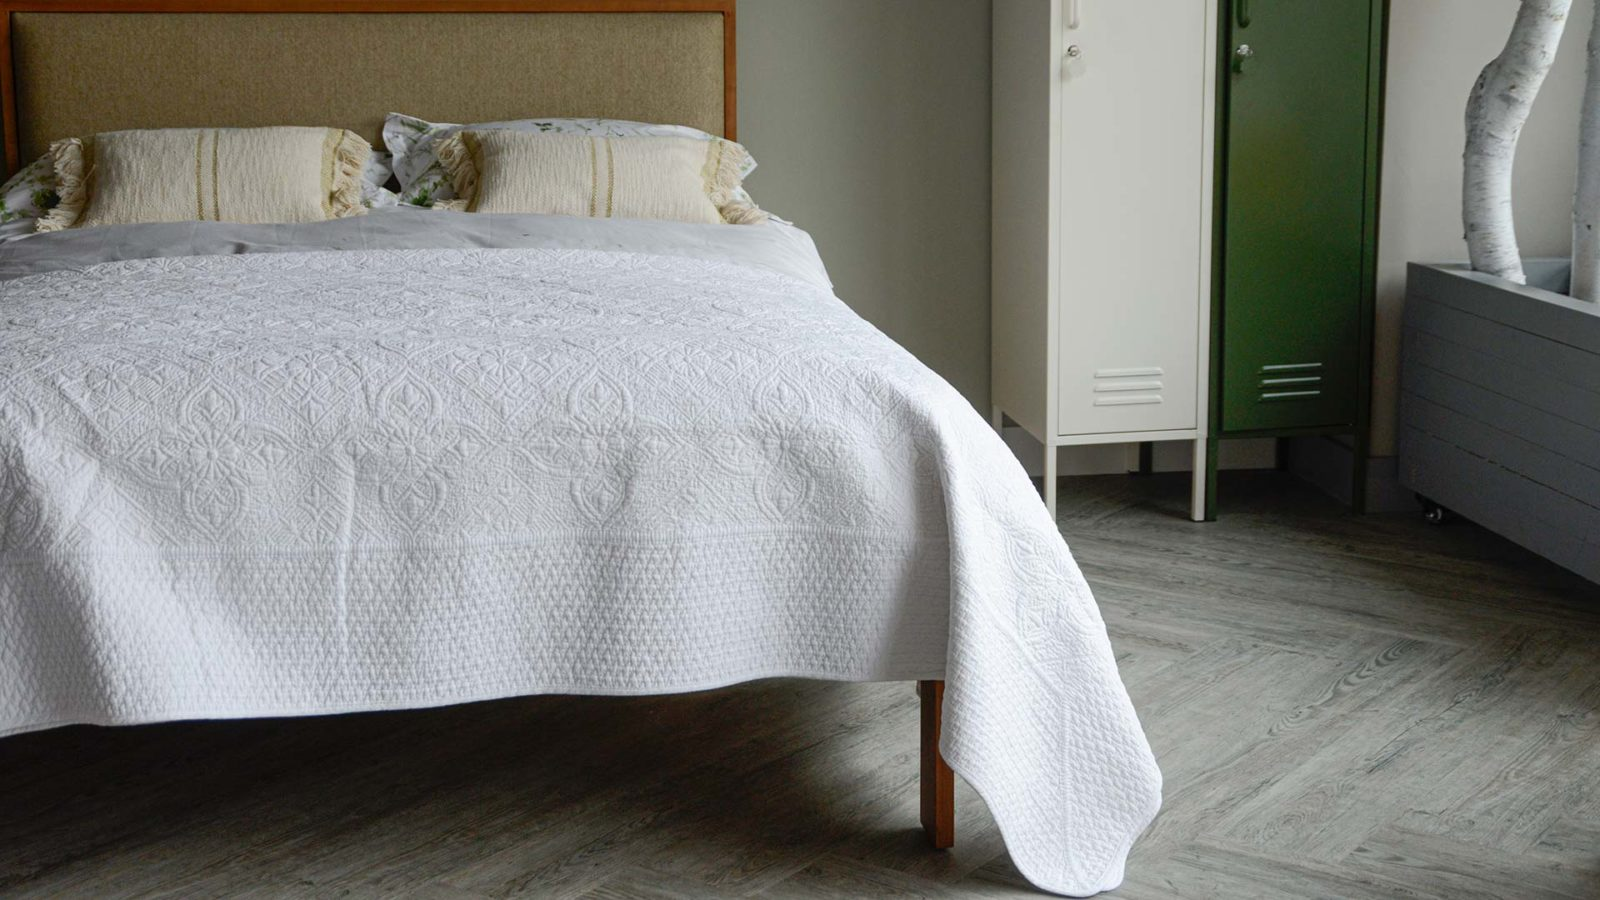 classic white stitched pattern quilted bedspread